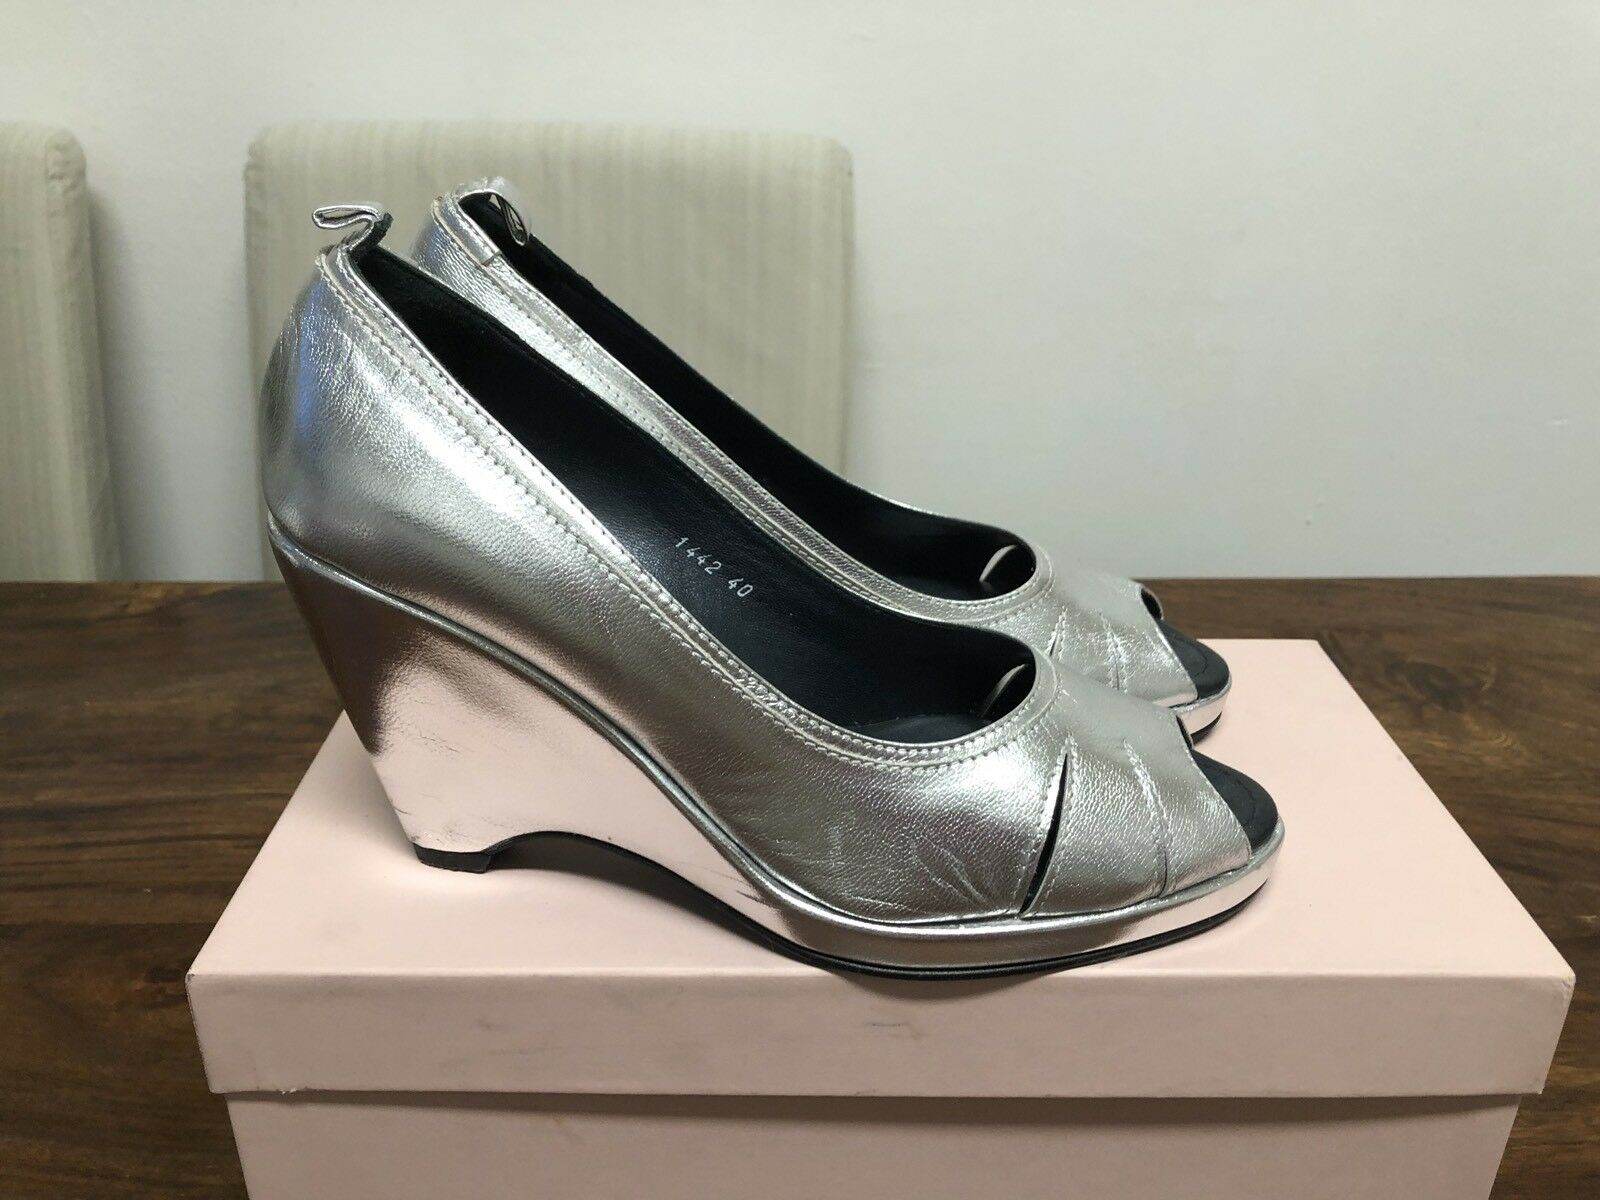 MAX & Co  Marc Marc Marc Jacops  Schuhe Keilabsatz Silber Gr. 40 0fb970